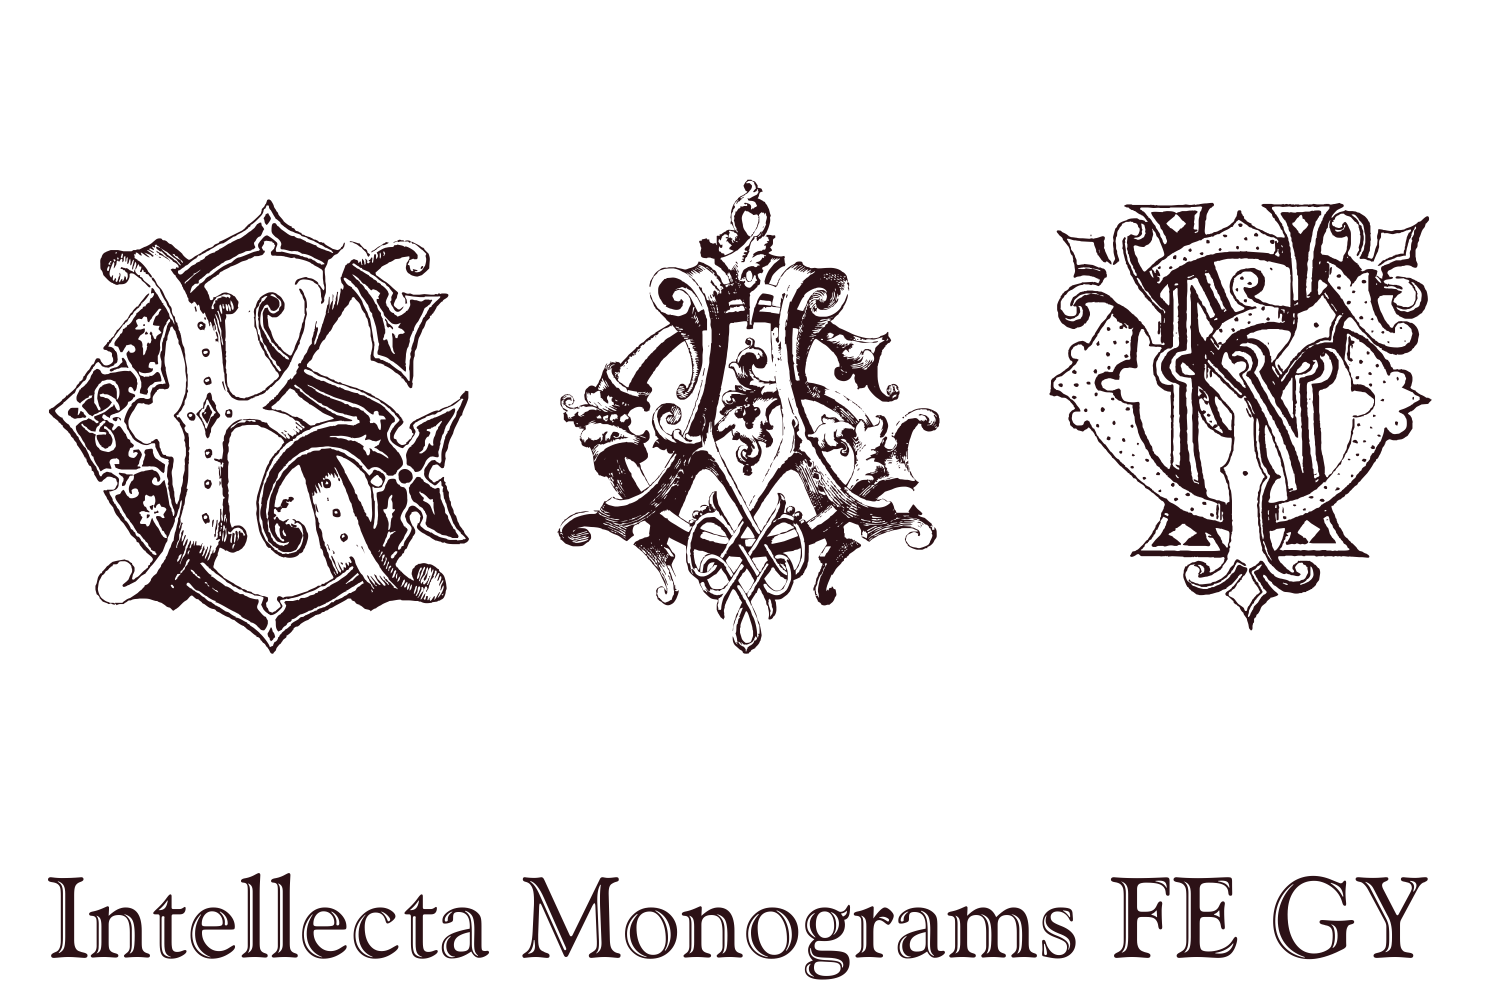 Intellecta Monograms FE GY example image 3